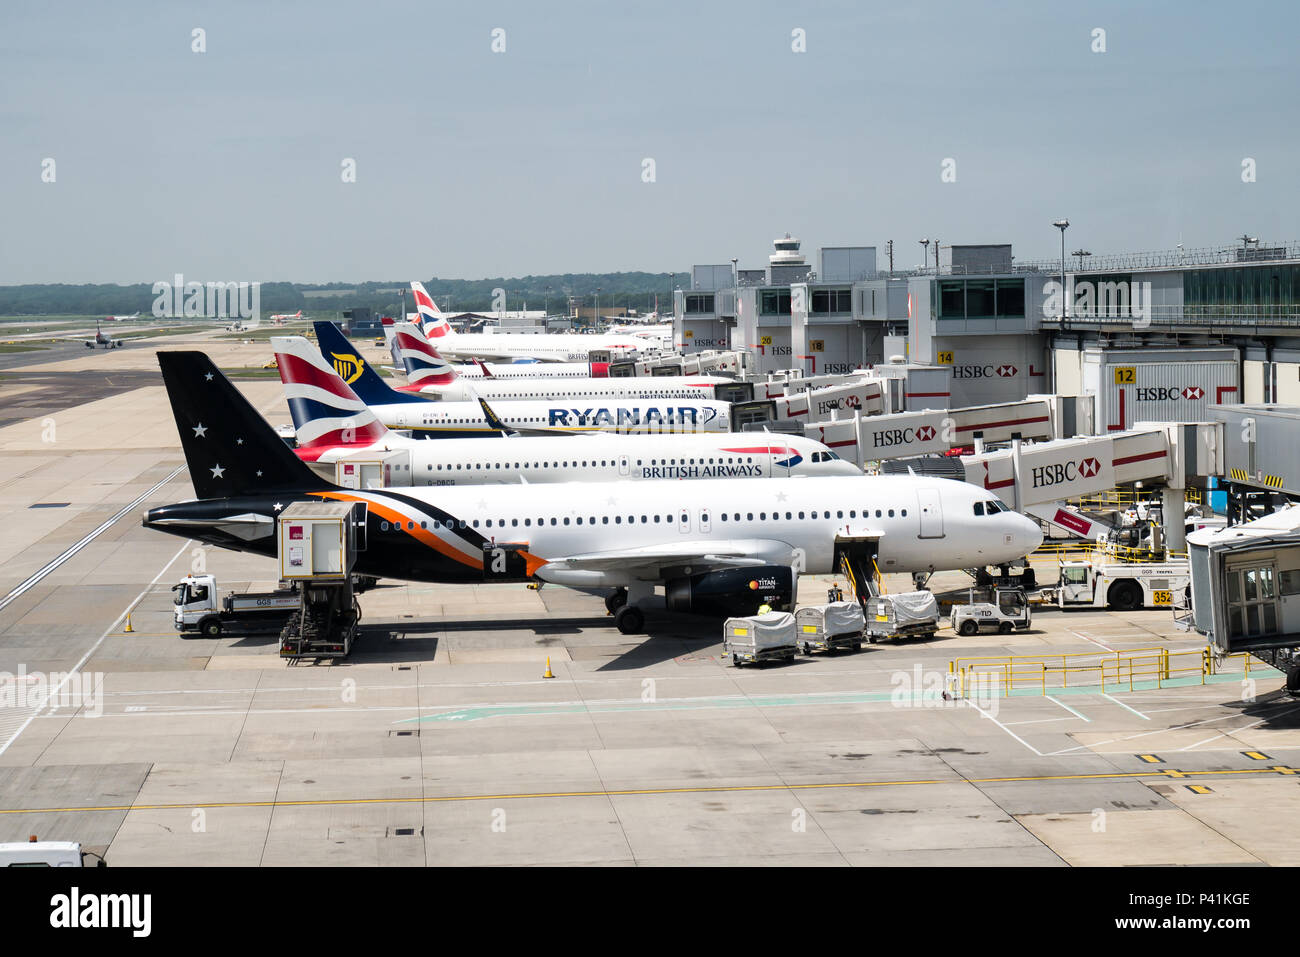 Aircraft at Gatwick Airport - Stock Image